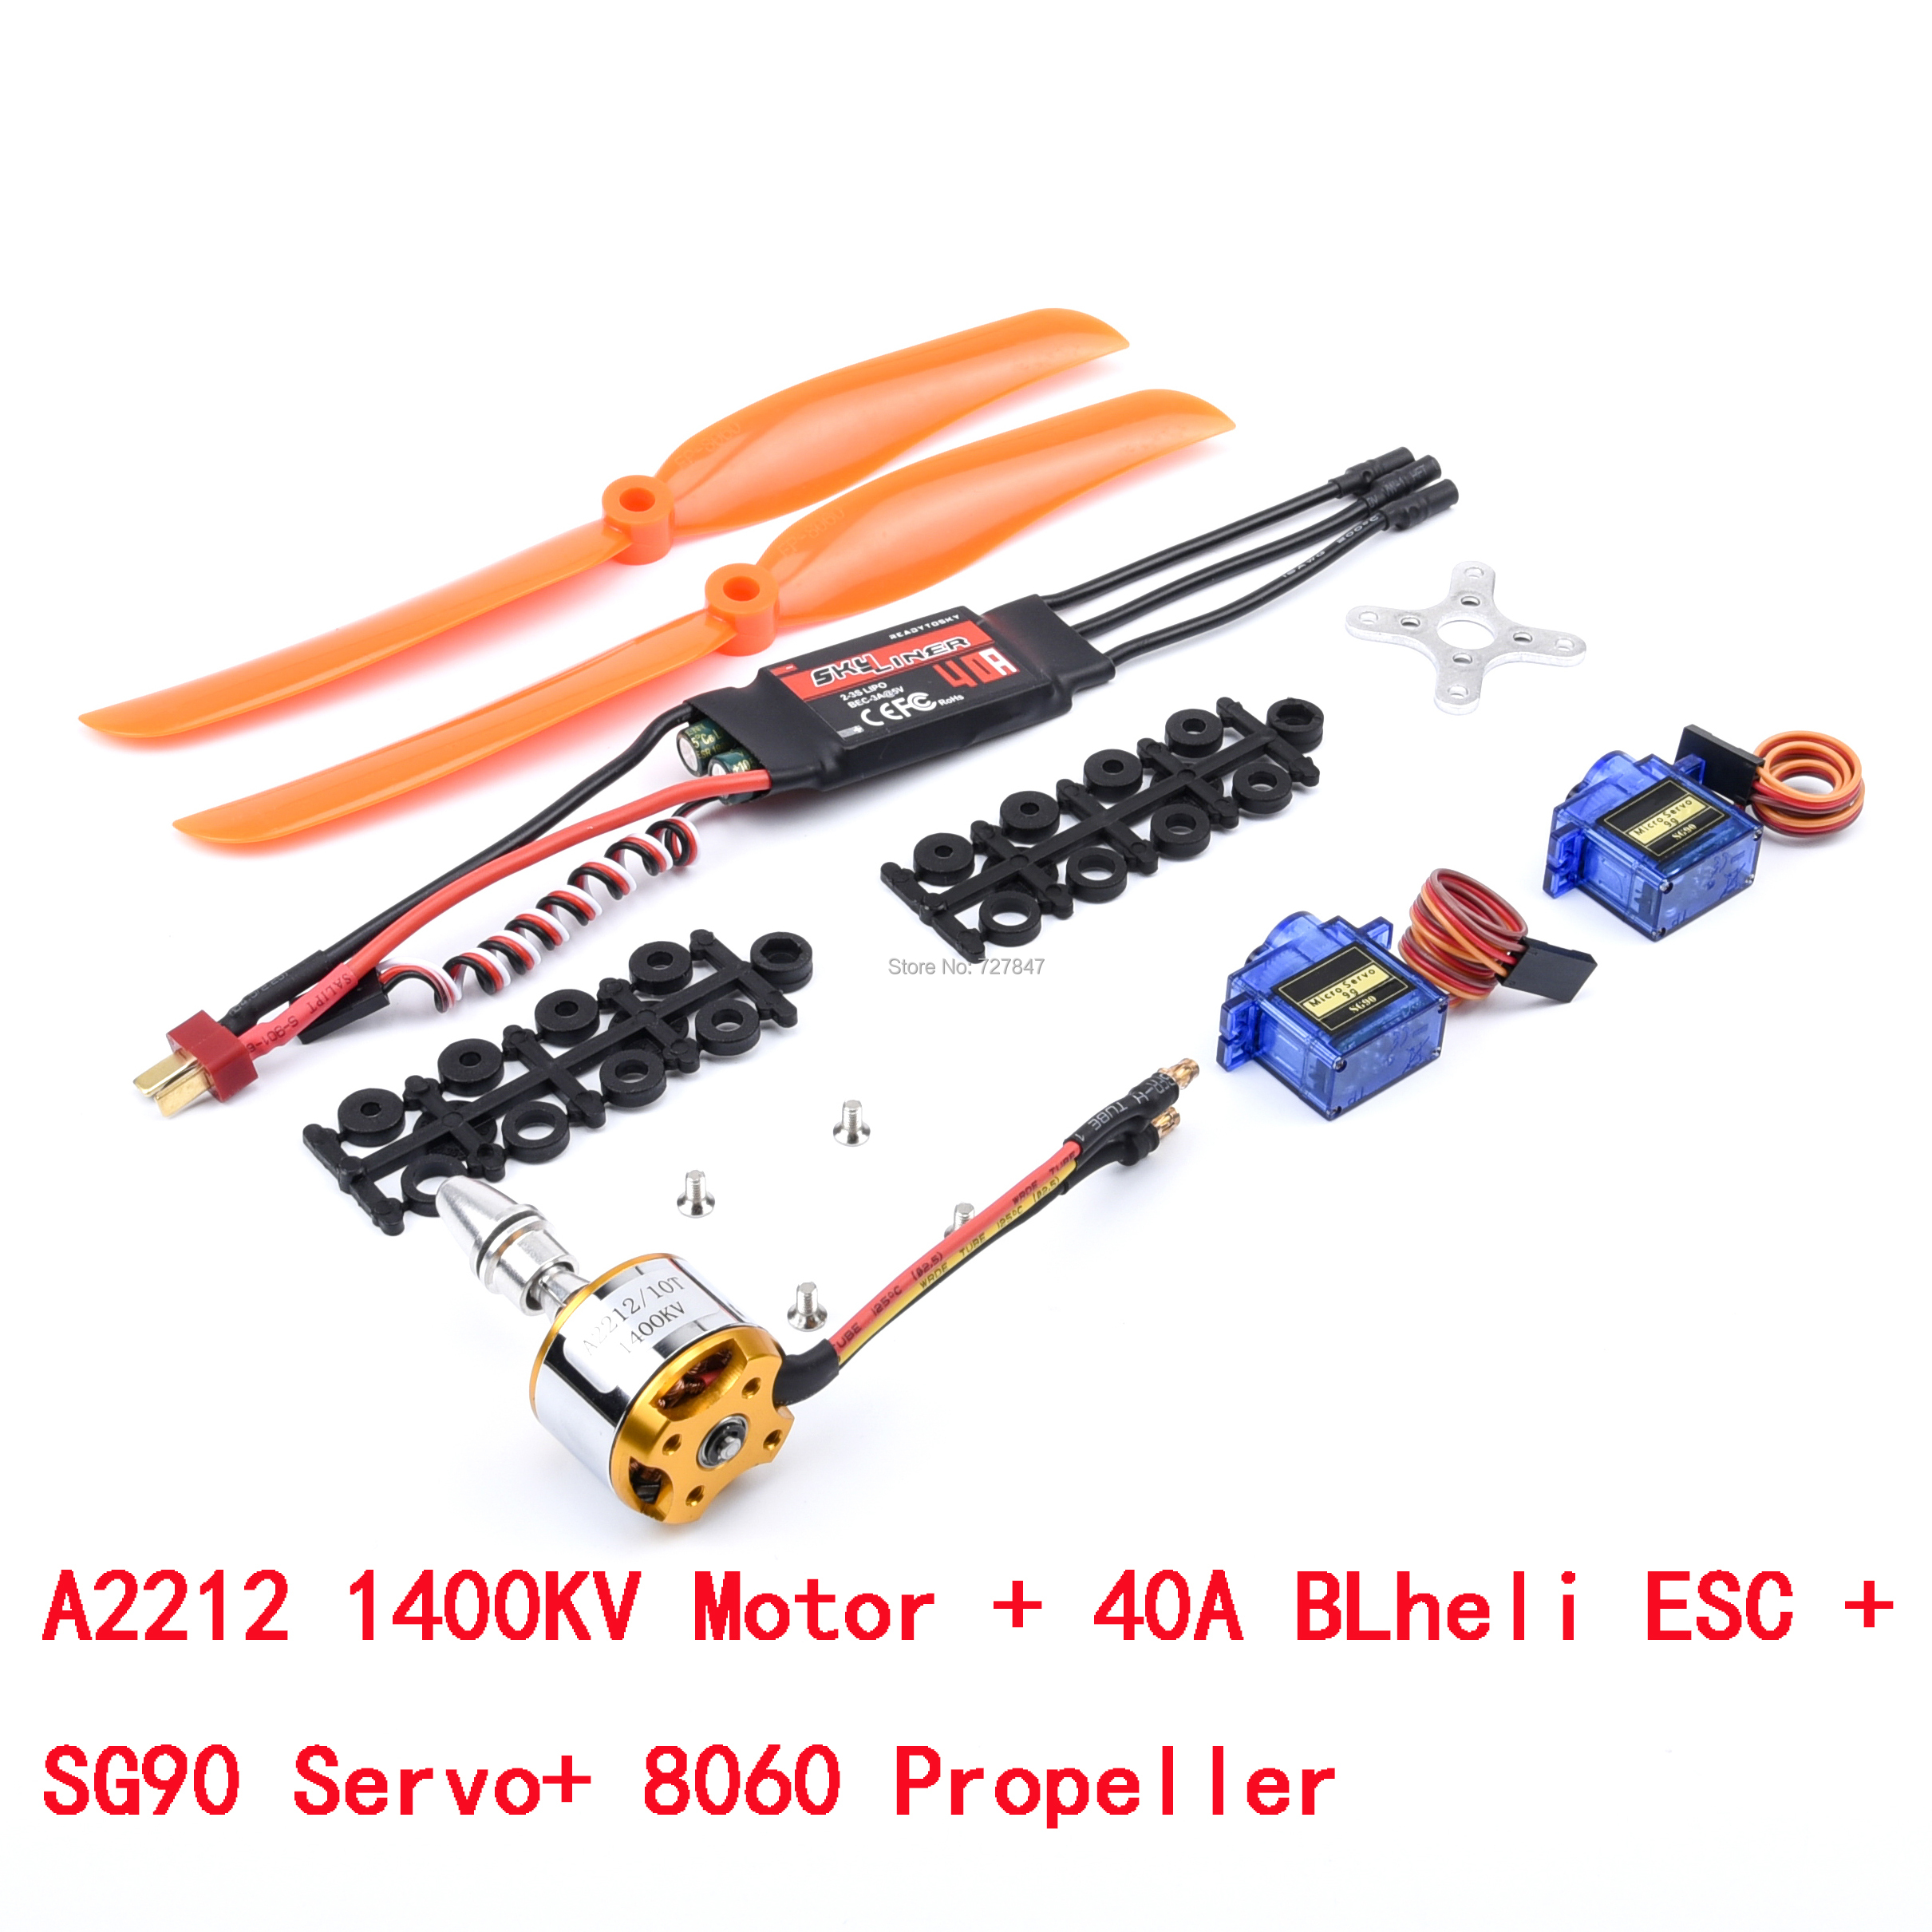 30A controller ESC+1400KV Brushless Motor A2212 for 4 Axis Multi Quadcopter S